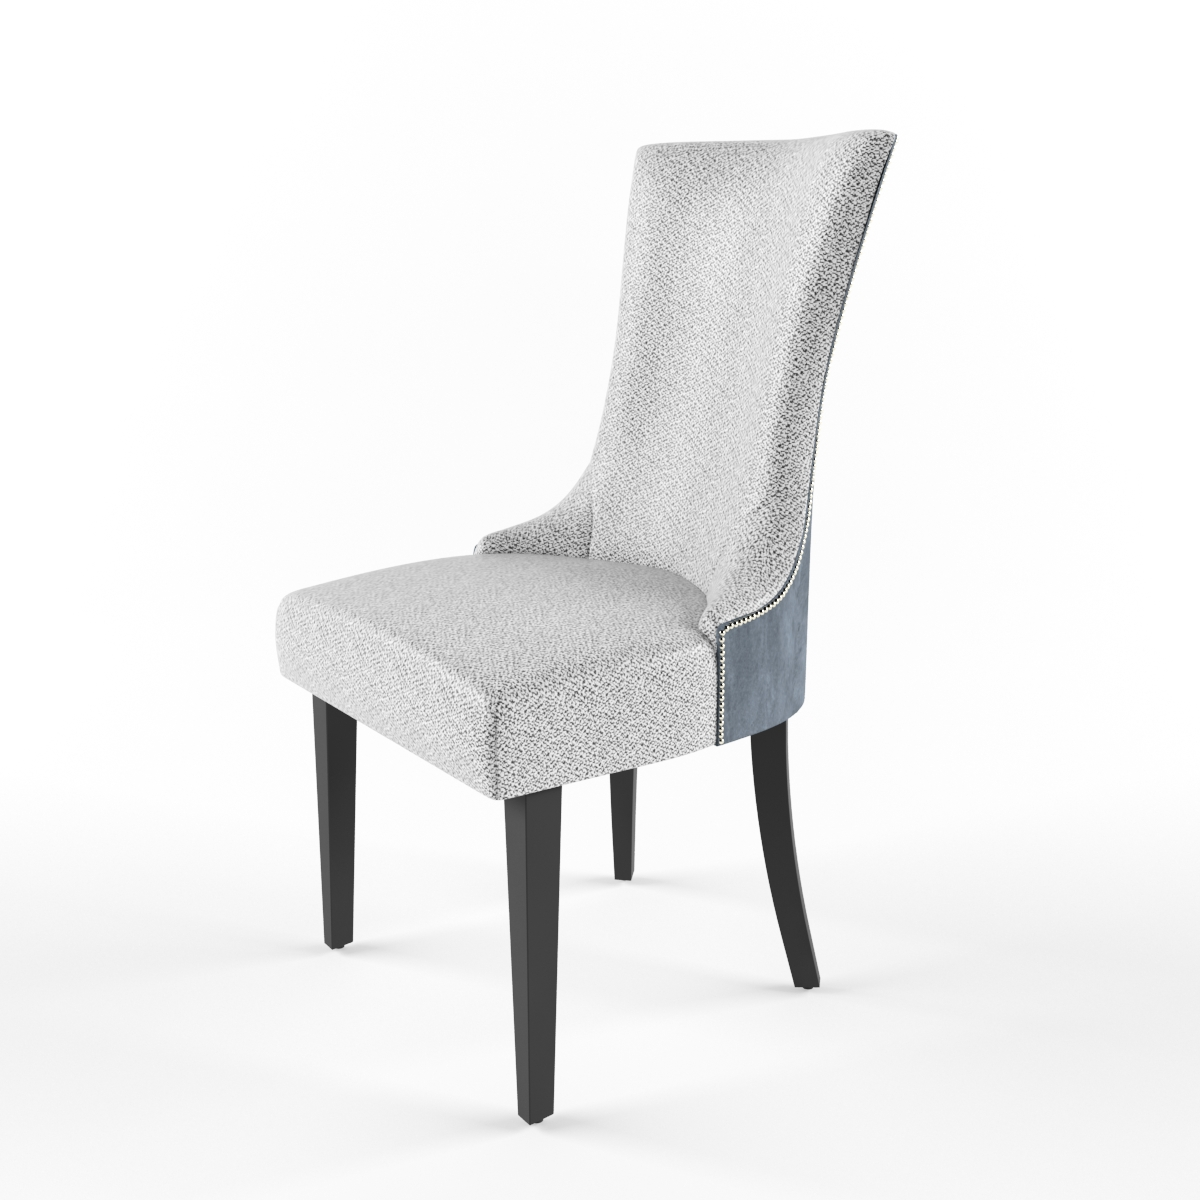 Free 3D Model Charles Chair By London Sofa U0026 Chair Company